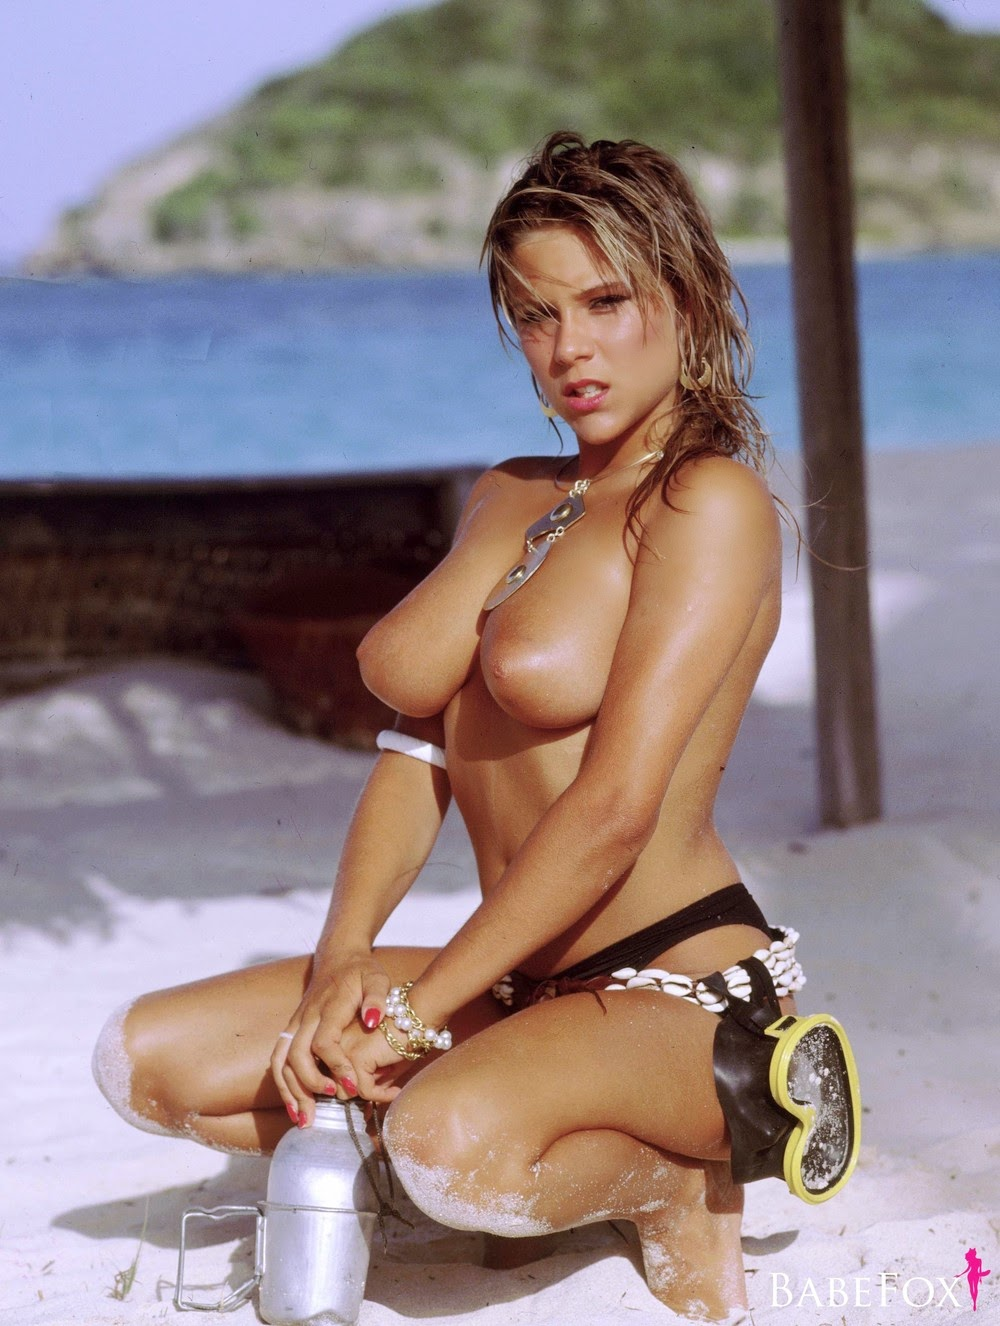 Samantha fox nudes